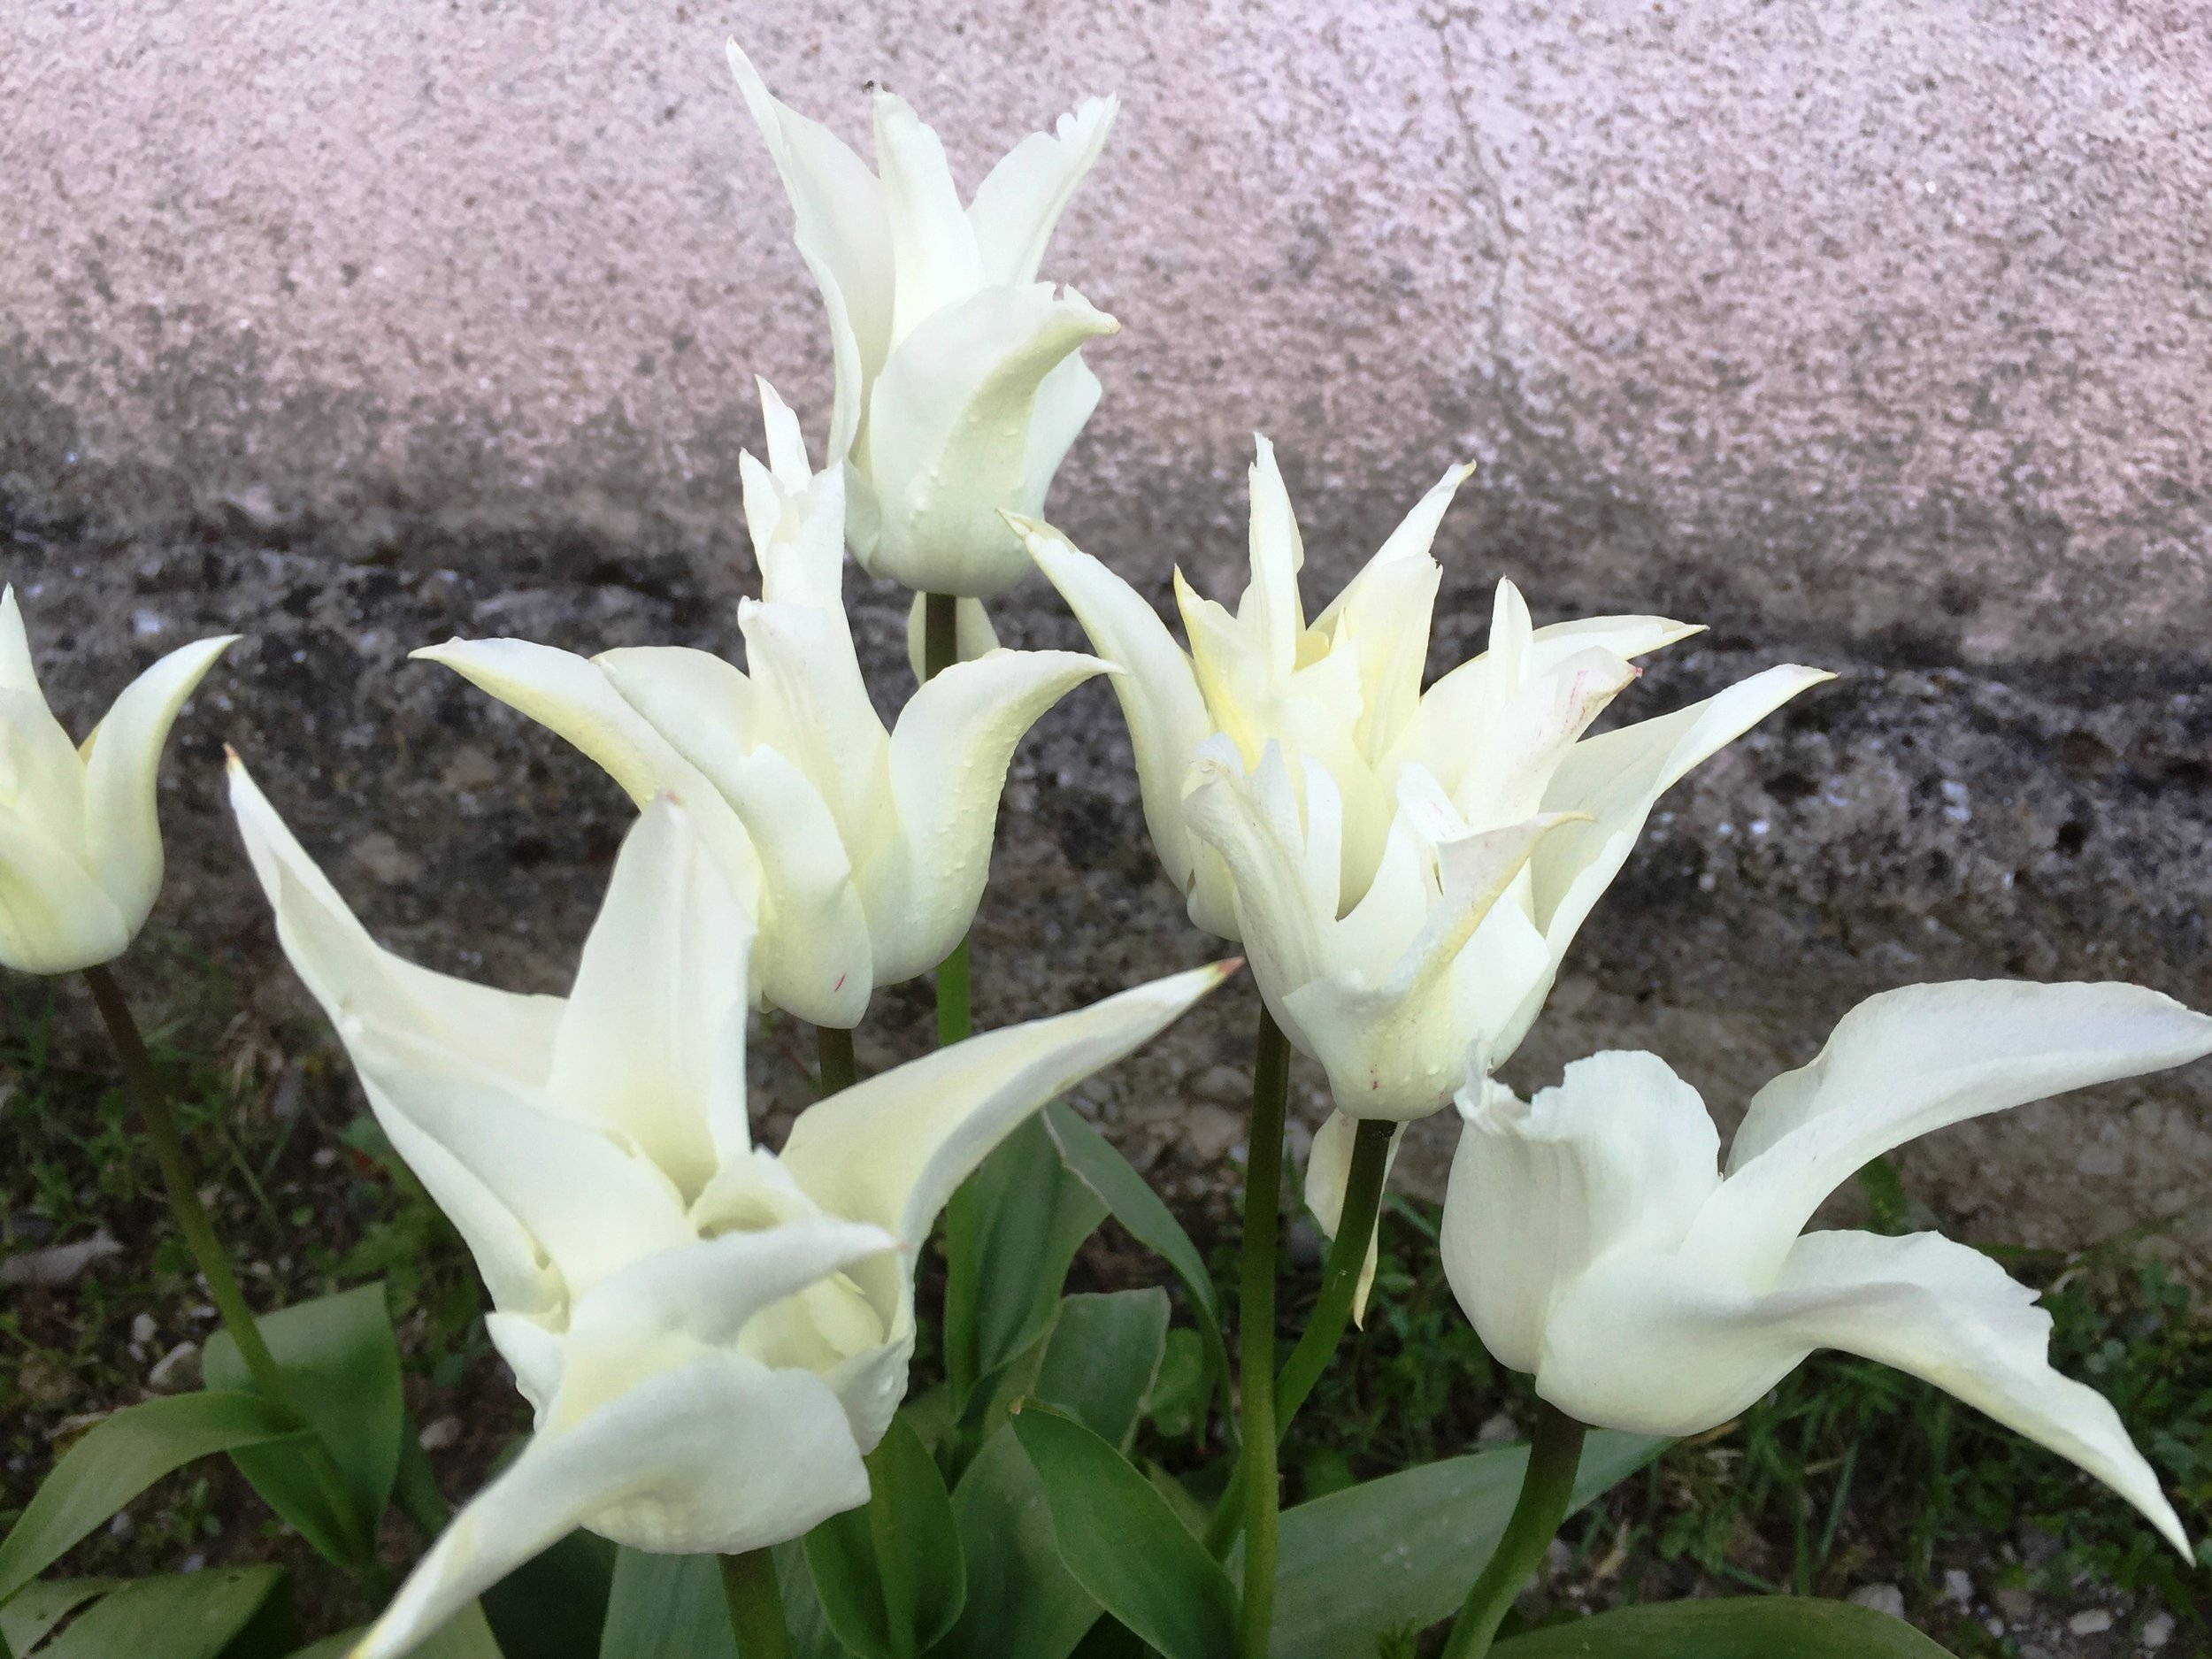 The Neglected Garden - White tulips.jpg